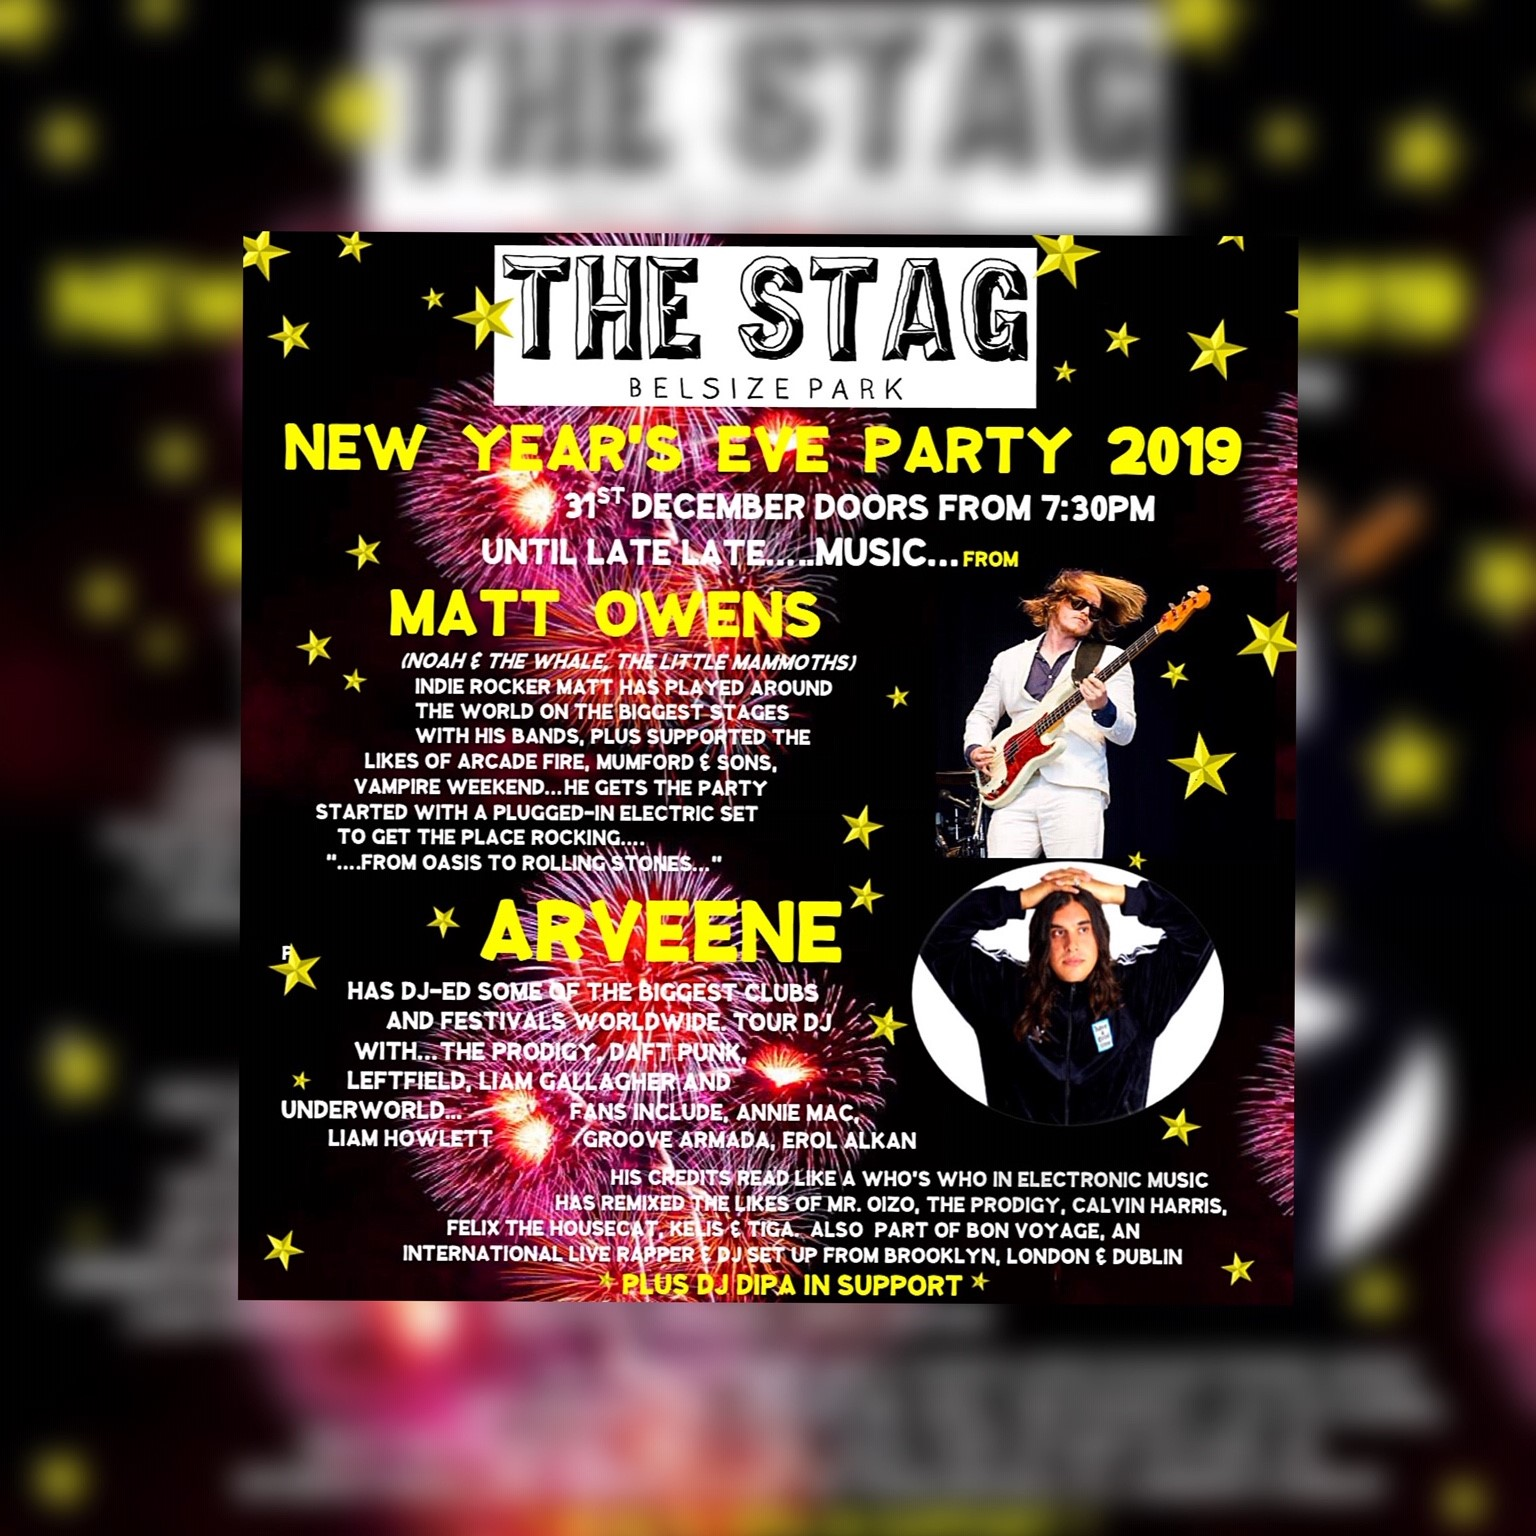 The Stag's New Year's Eve Party 2019